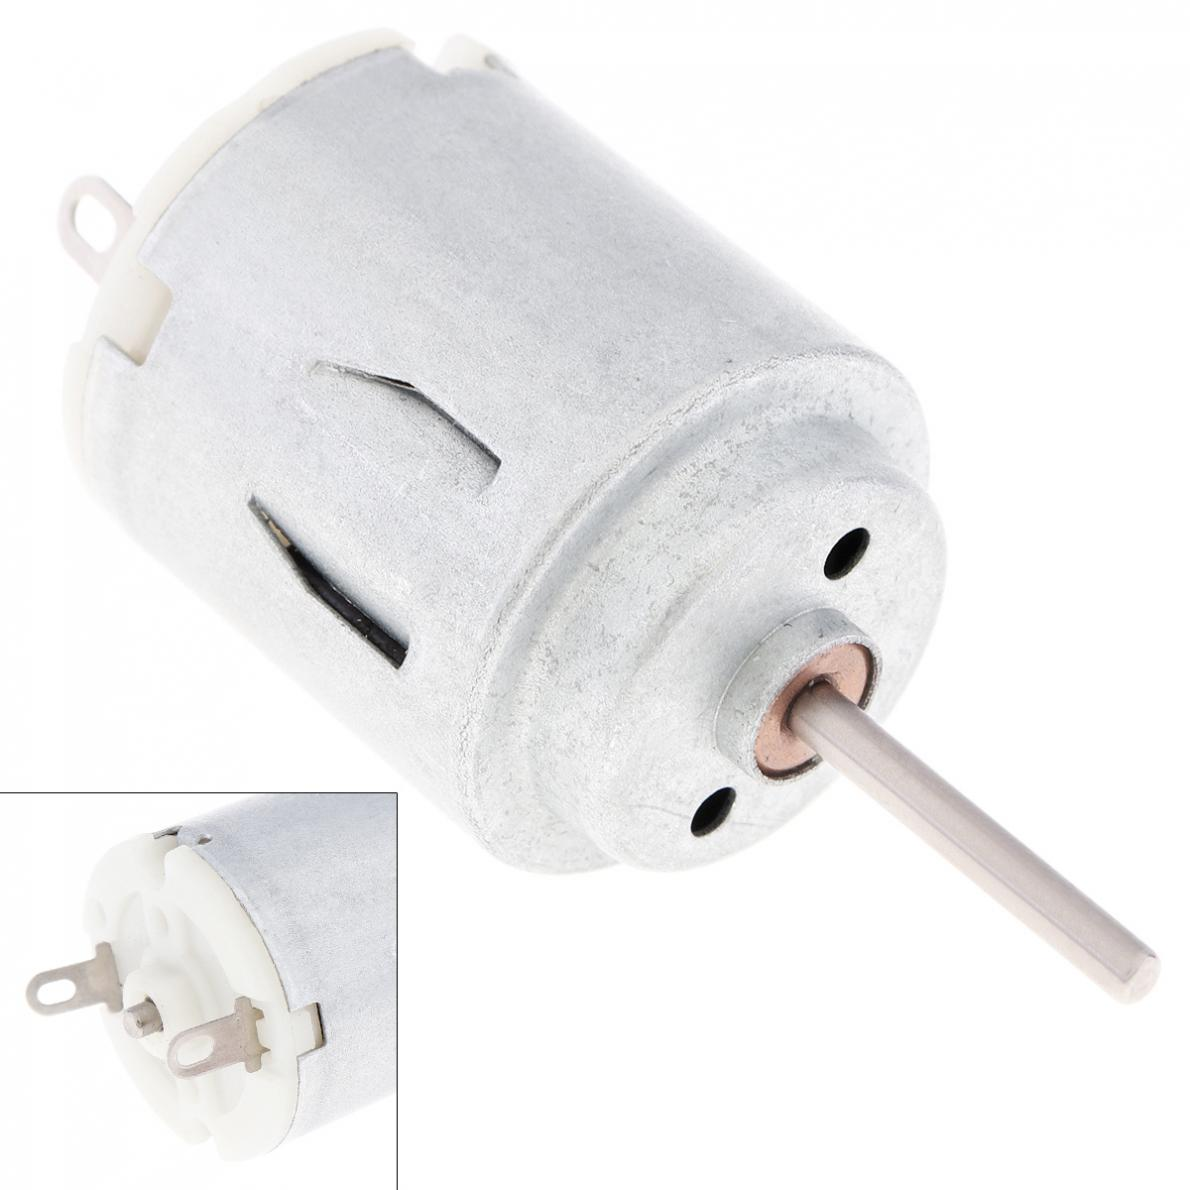 R140 3V 1.25W 14200rpm DC Motor Round Gear Solar Fan Motor Electric Toothbrush Motor With Carbon Brush For DIY Toys Hobbies